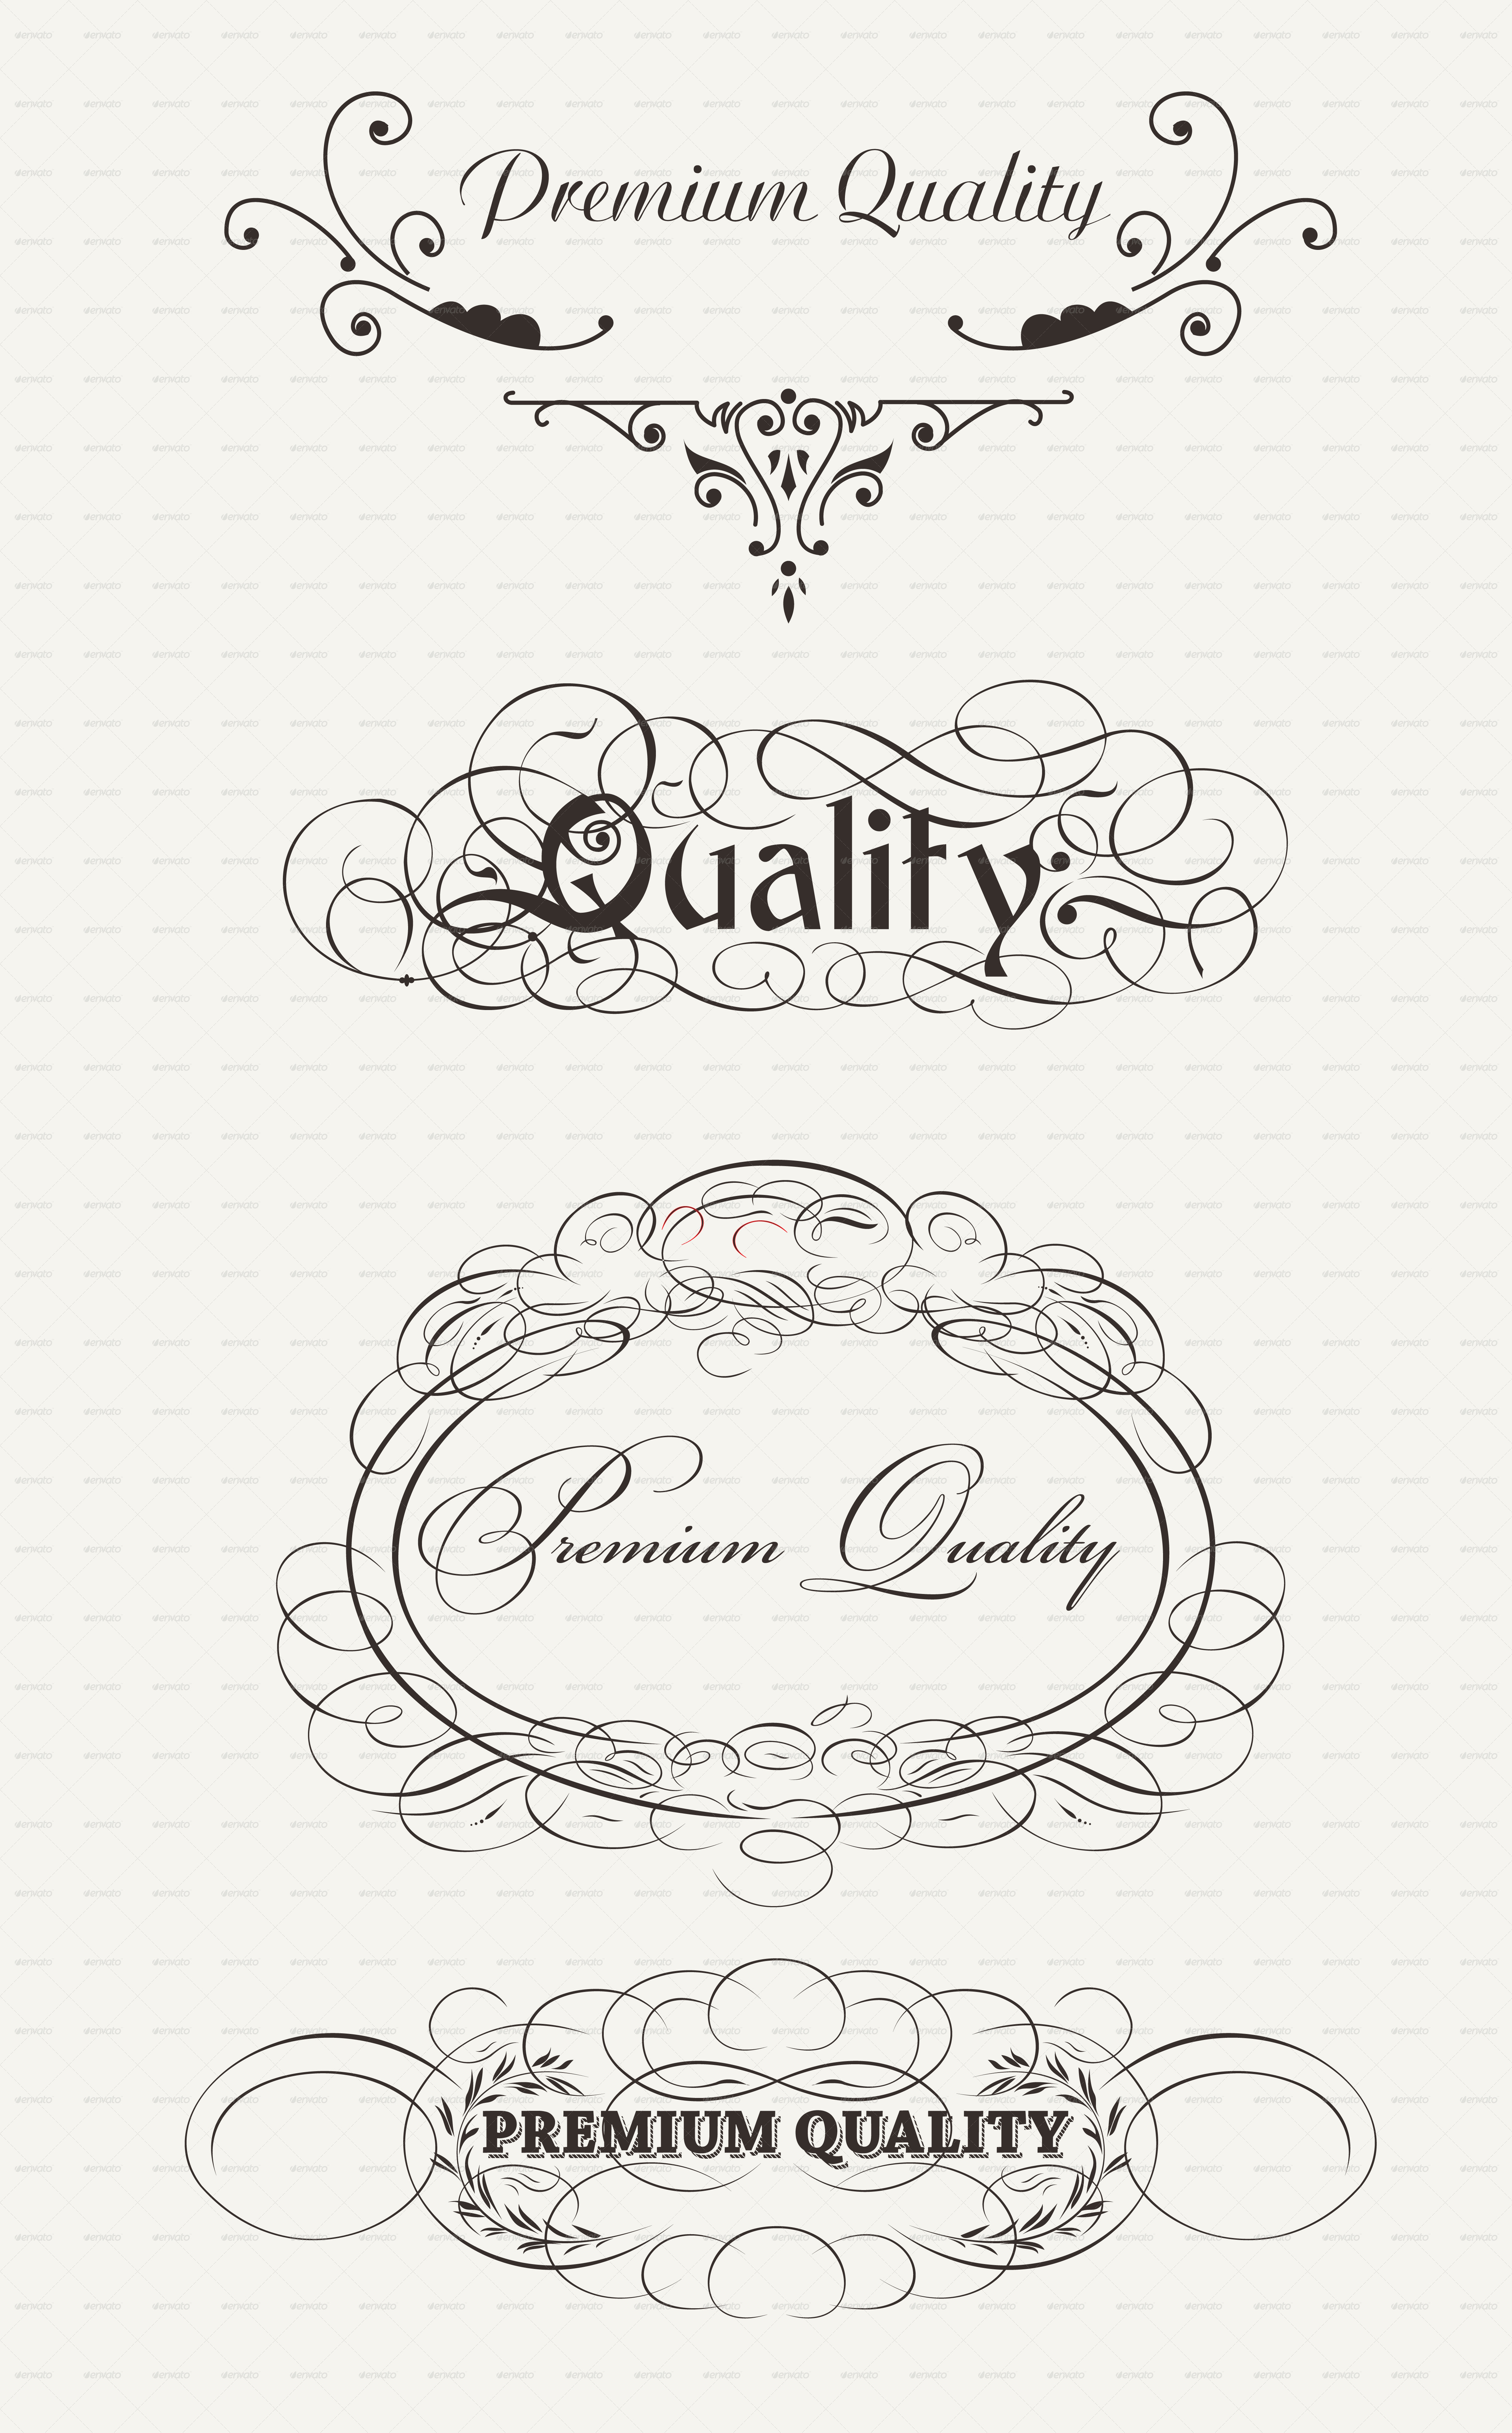 Retro Elements Collection For Calligraphic Designs